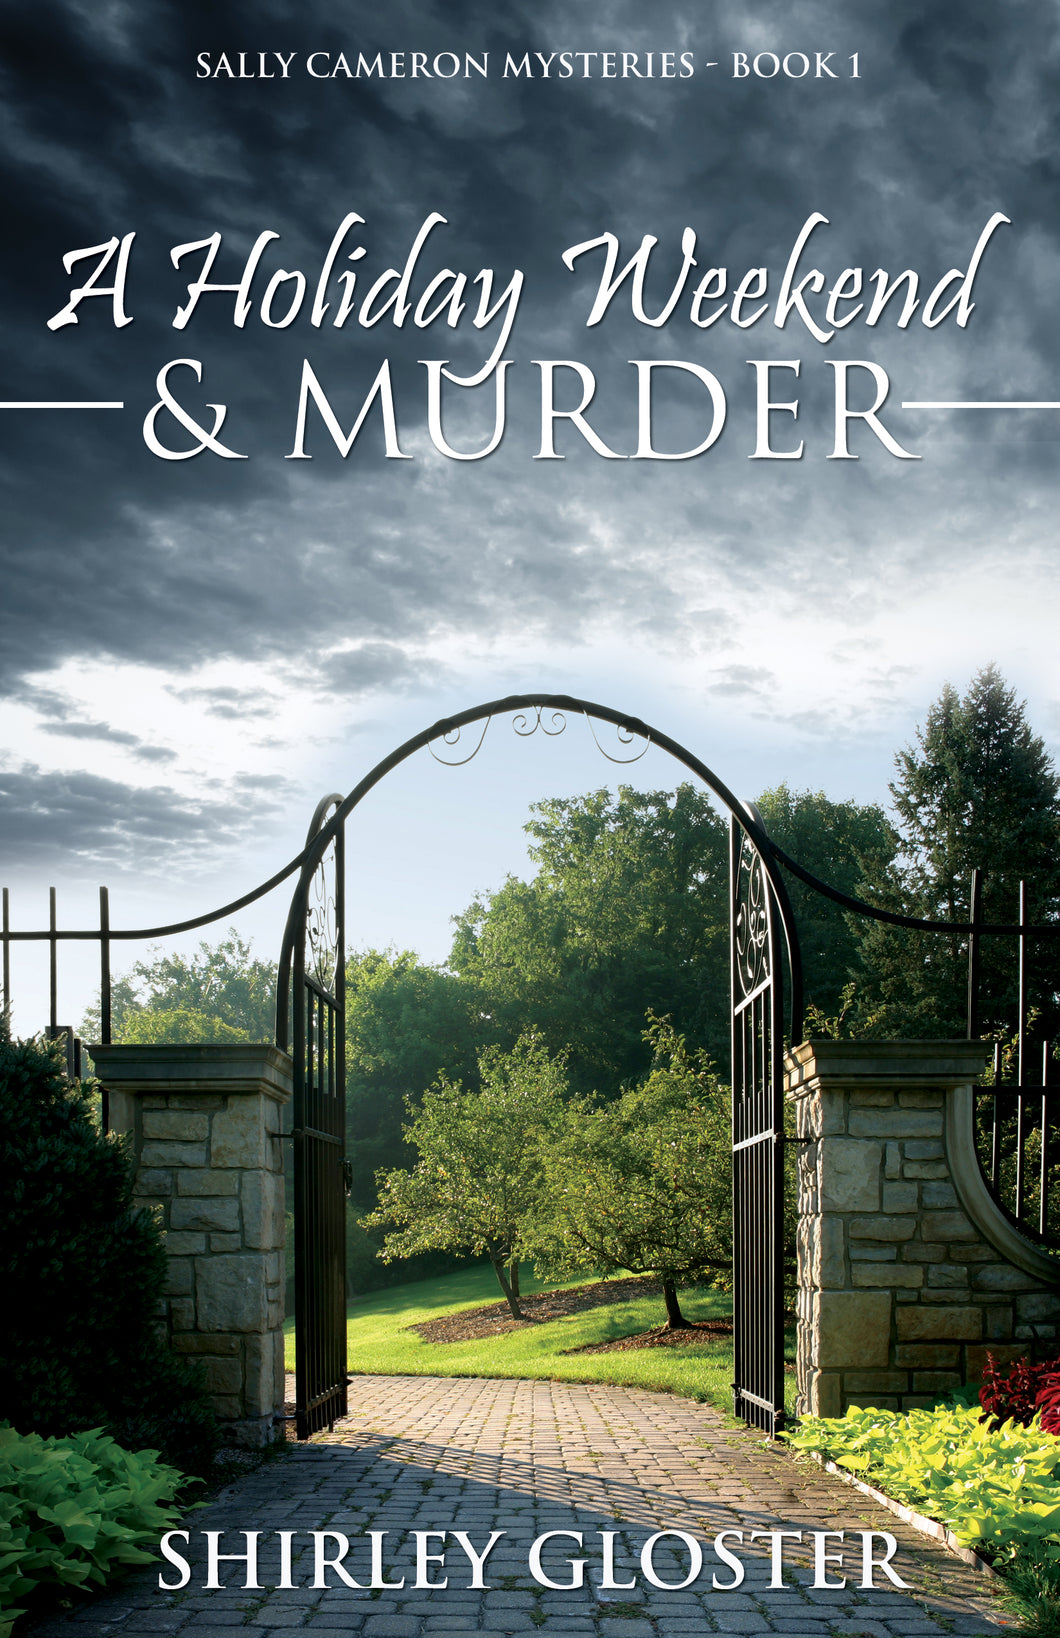 A Holiday Weekend & Murder